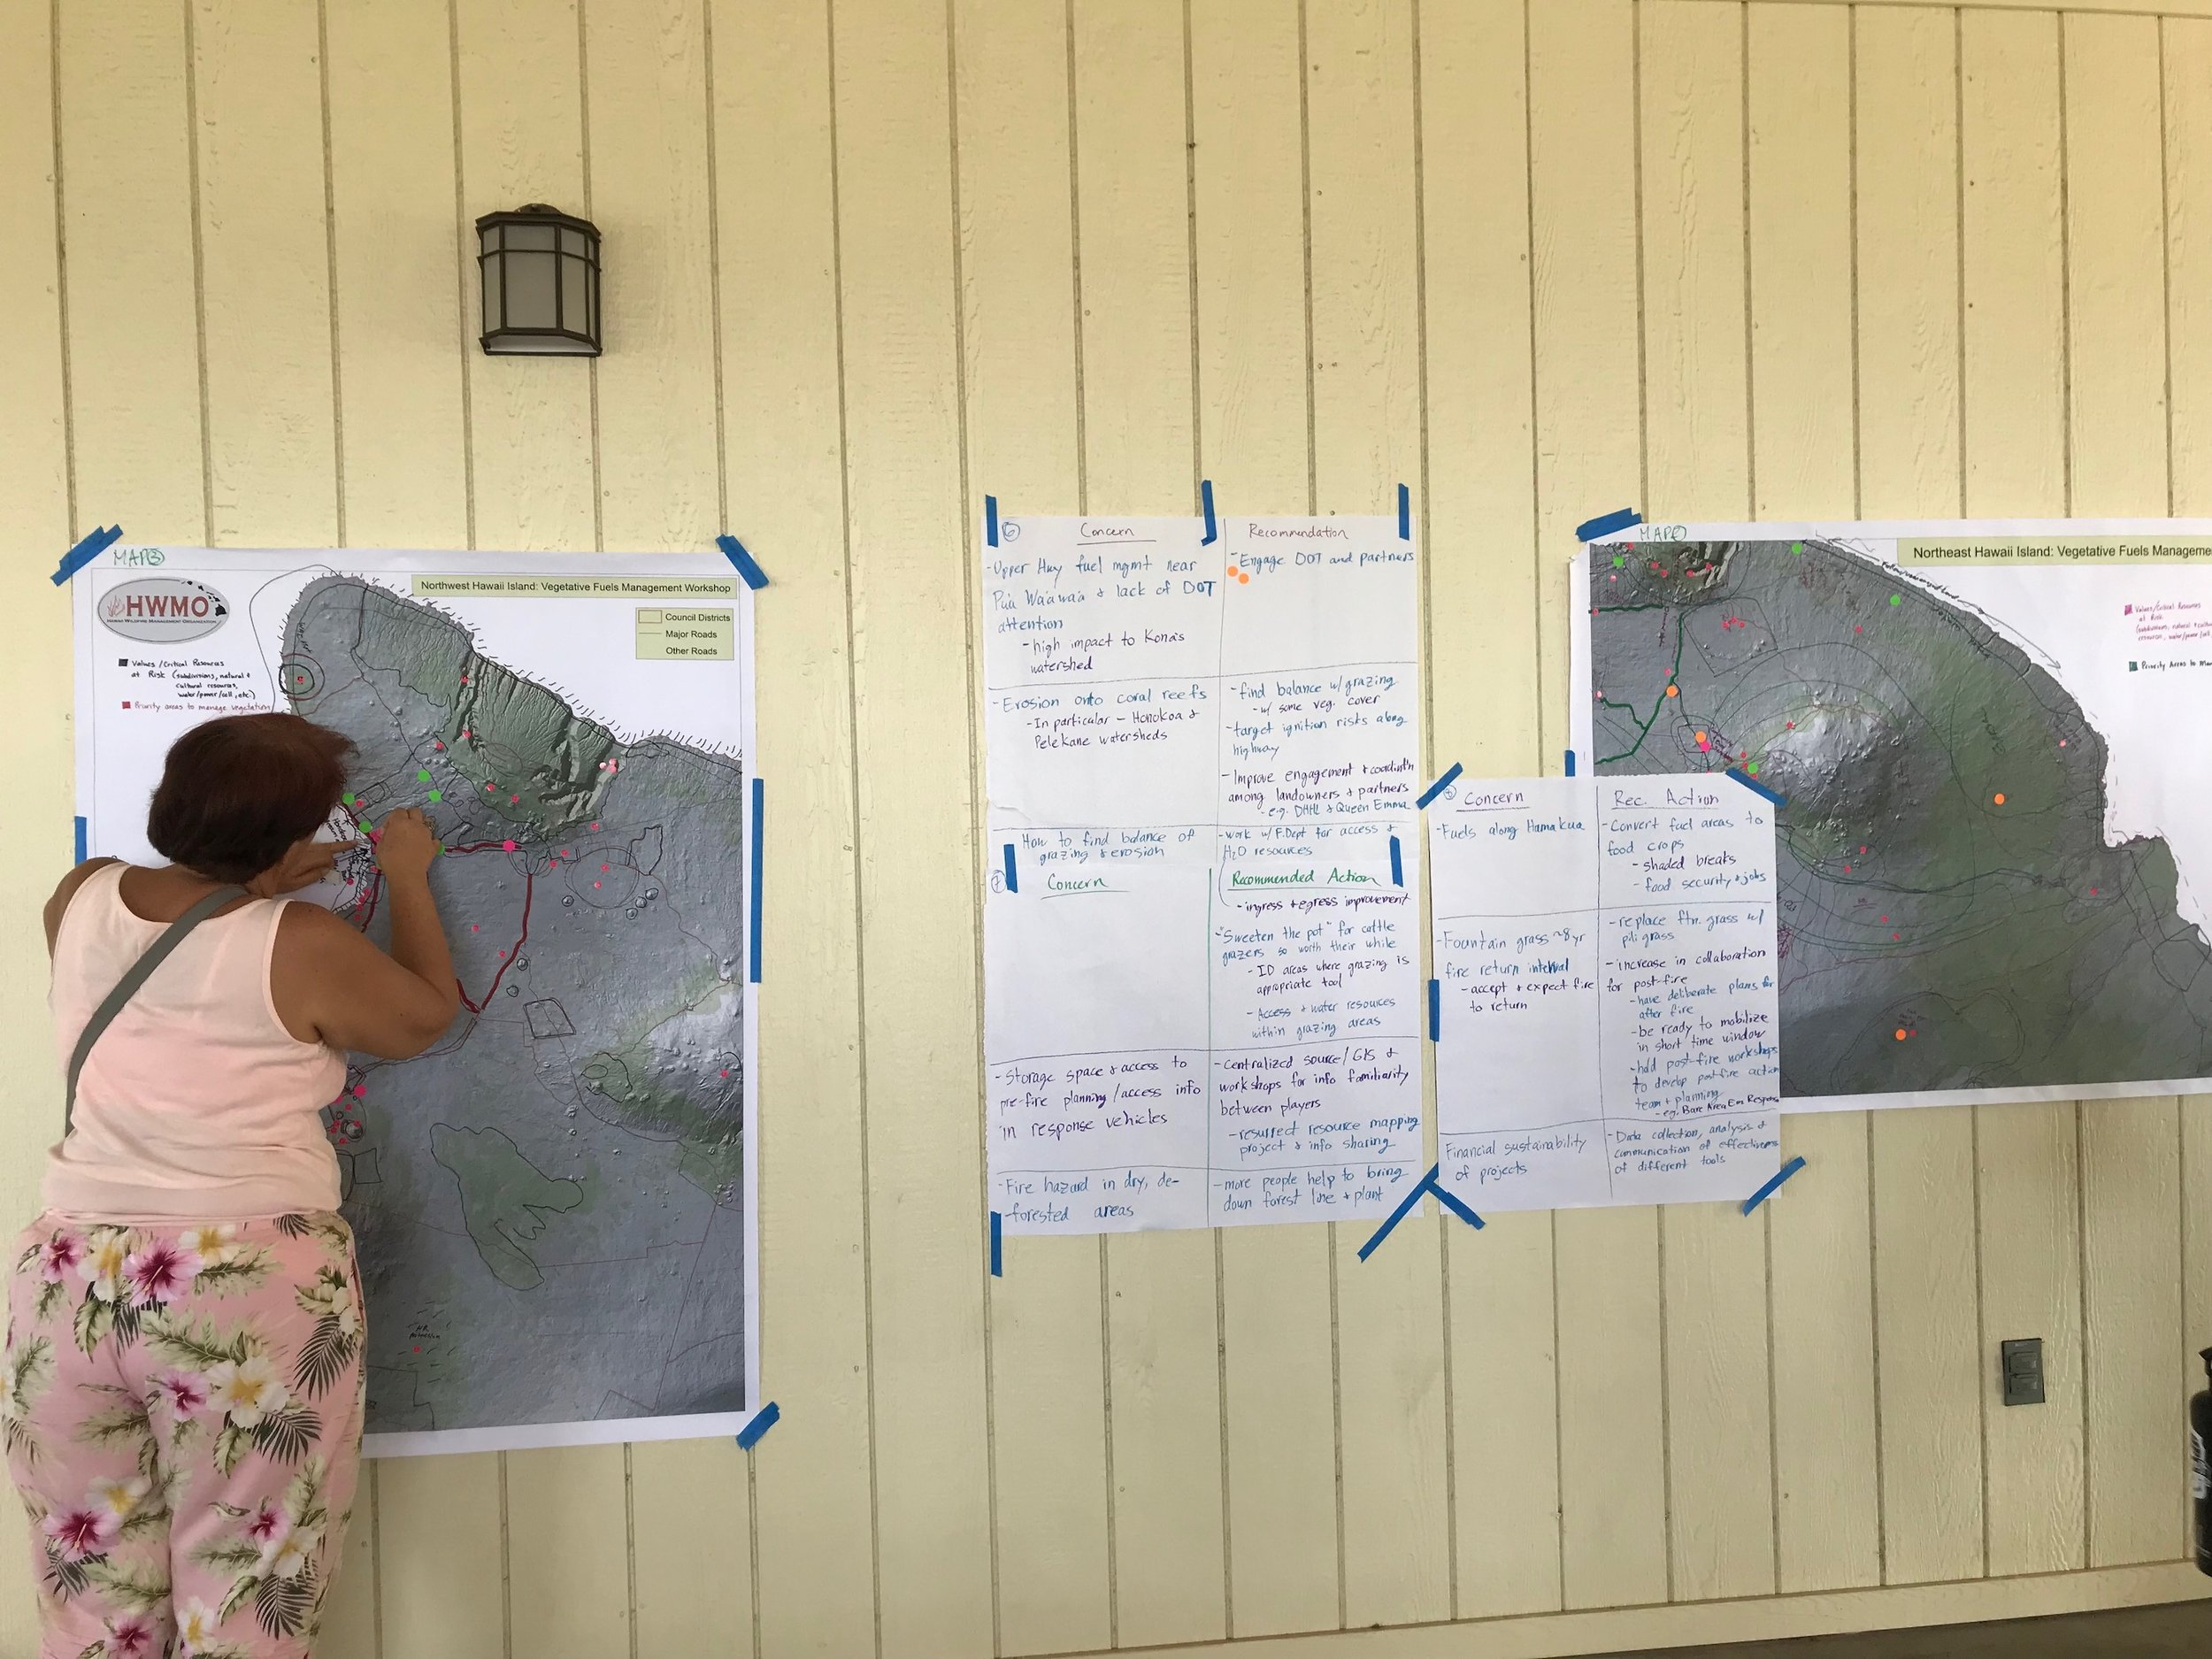 Hawaii Island Kailapa Vegetative Fuels Management Collaborative Action Planning Workshop_2_26_2019_70.jpg